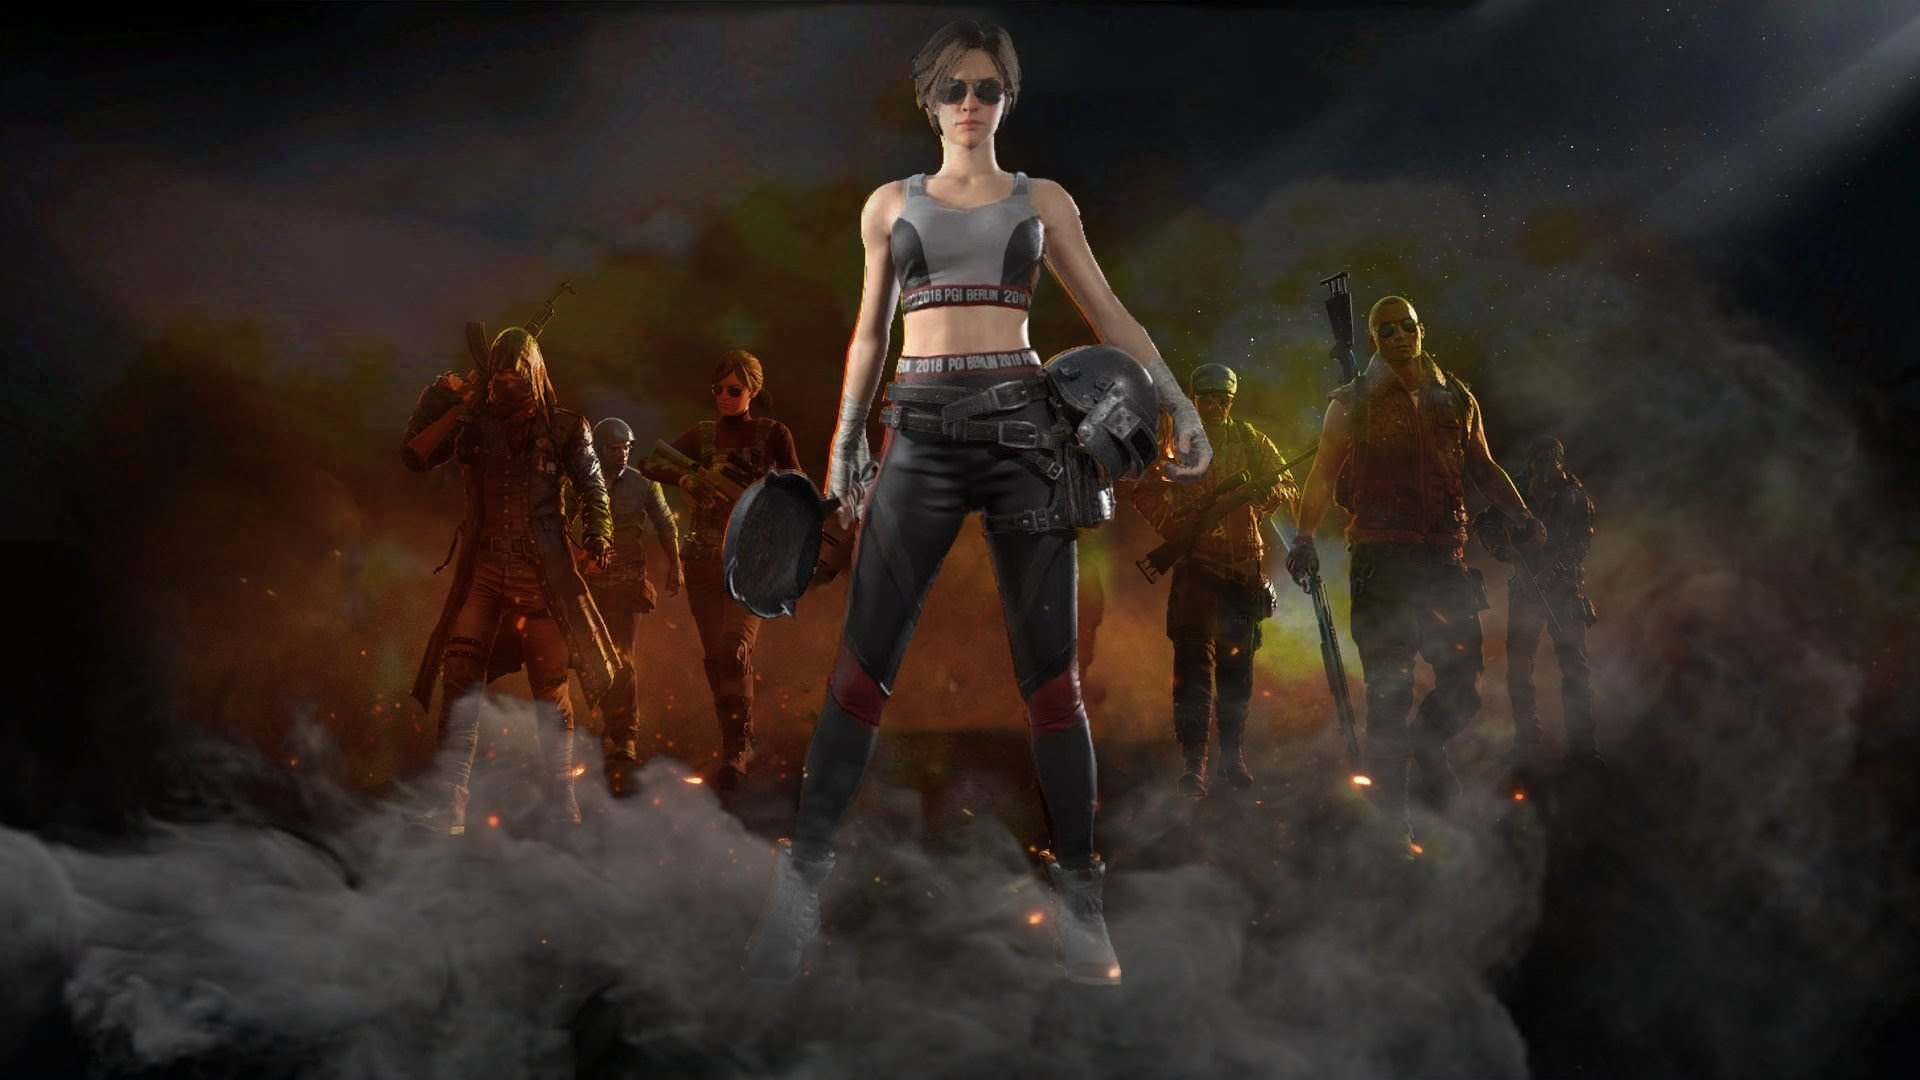 Top 10 PUBG Wallpapers for Smartphone, Iphone and Laptop ...